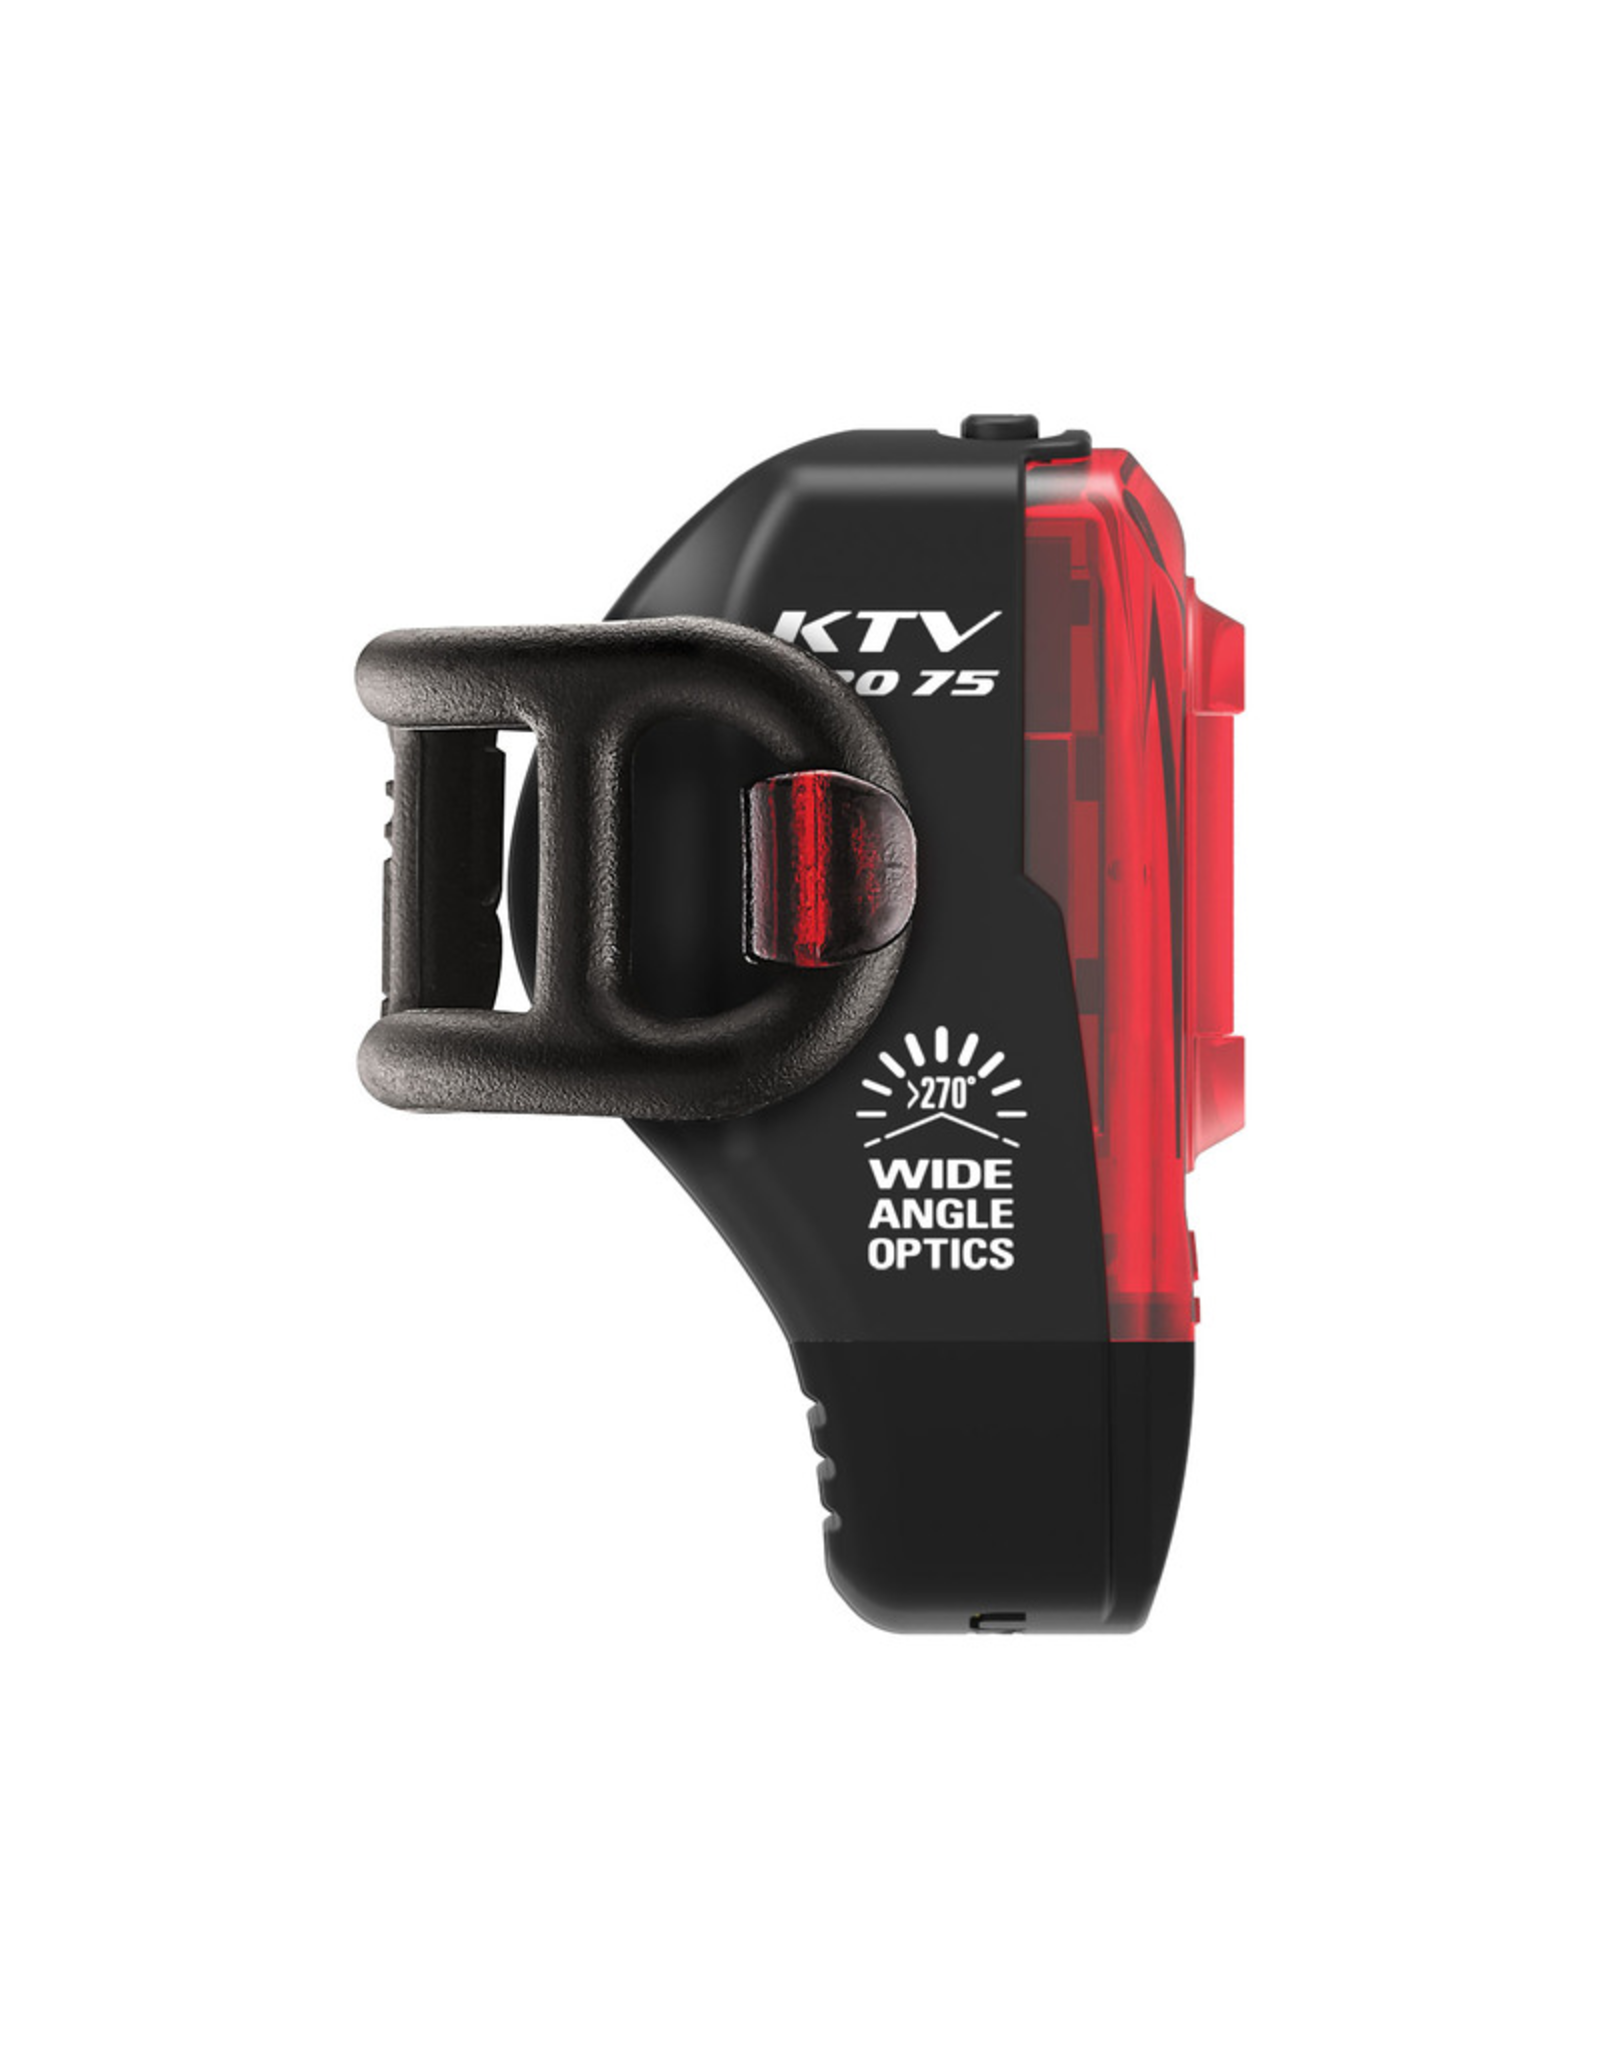 LEZYNE LIGHT TAIL LIGHT LEZYNE KTV DRIVE PRO 75 LUMENS